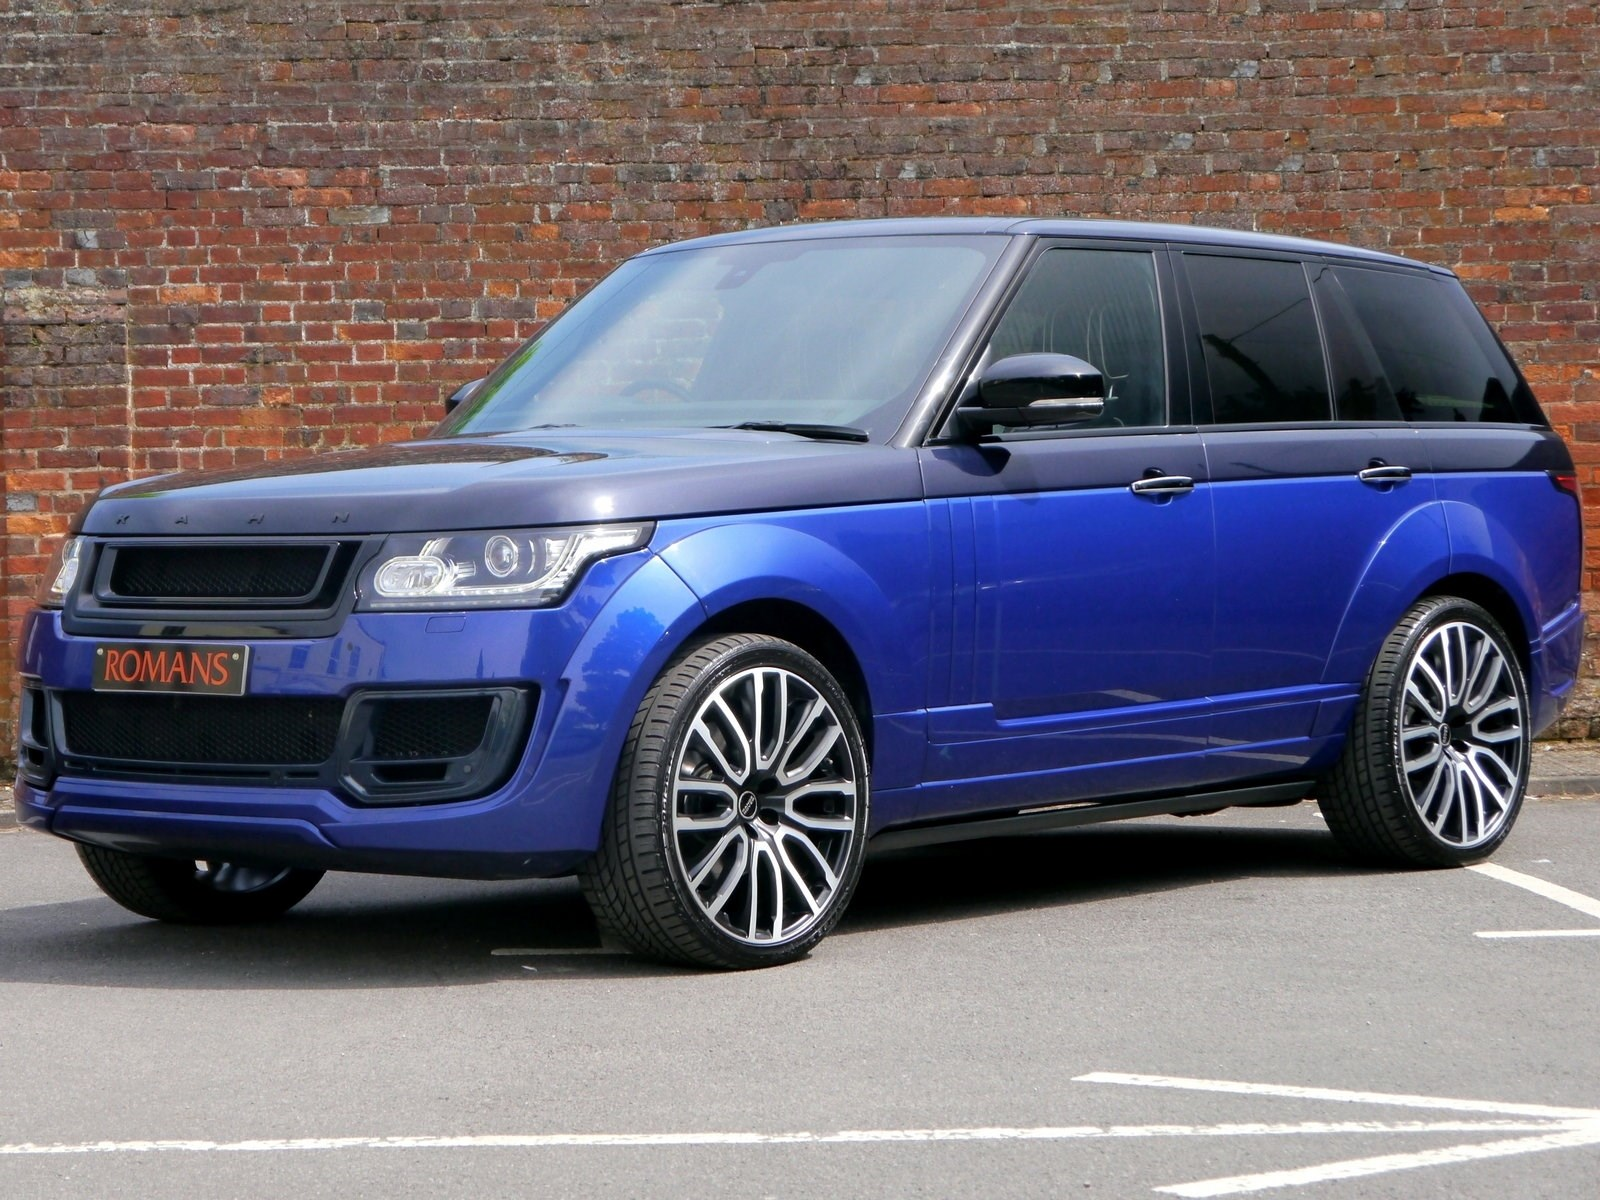 Tyres St Albans >> Land Rover Range Rover Vogue SE 4.4 SDV8 - Project KAHN Pace Car for Sale